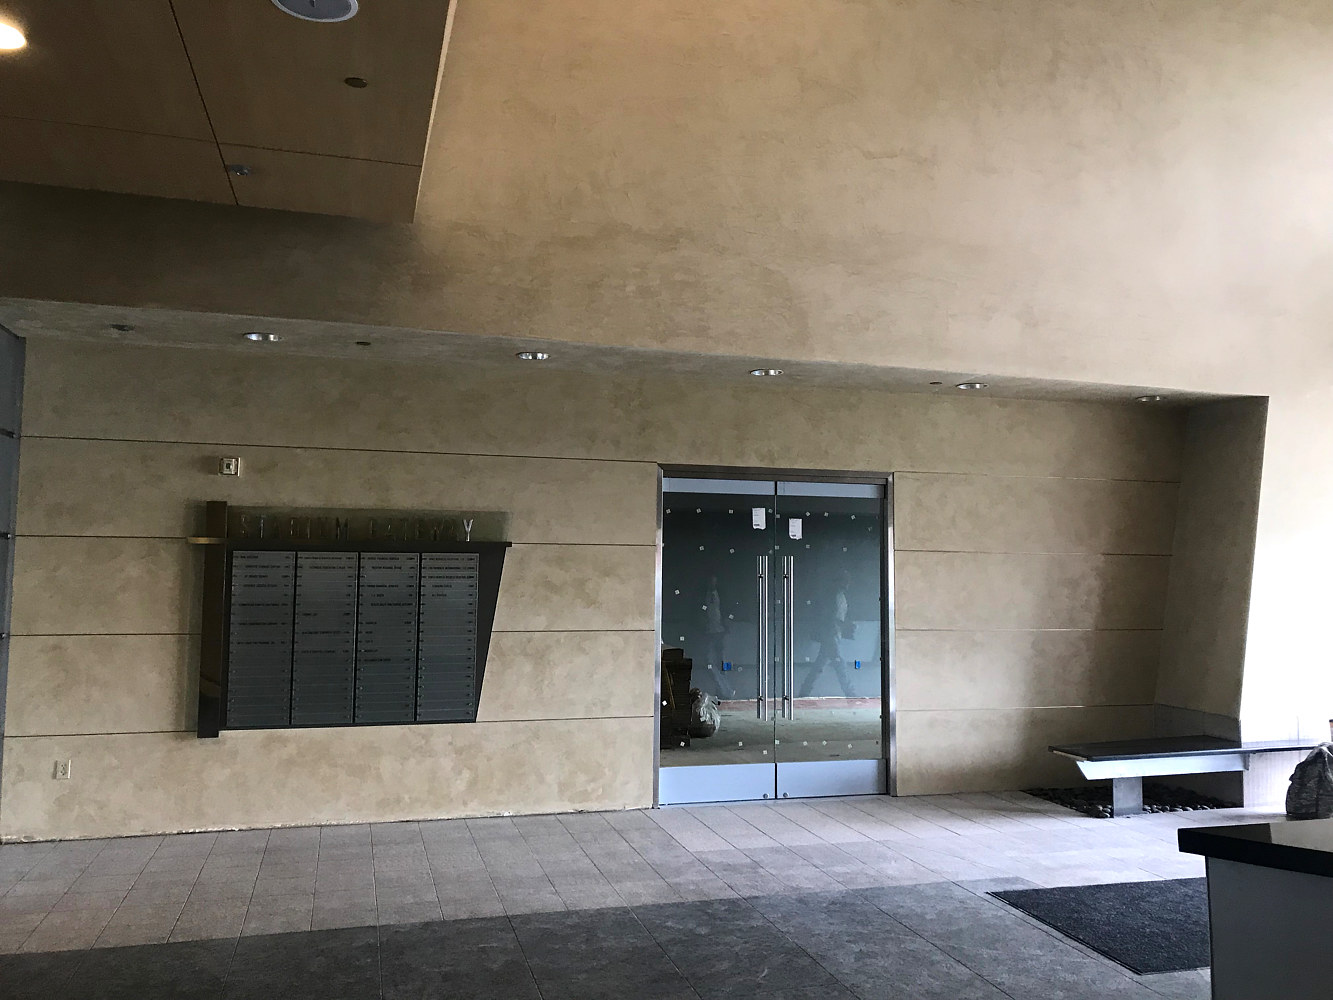 These walls in a coomercial space near Anaheim stadium had been badly damaged during renovations. RMS matched the existing plaster to create a seamless transition for old to new.  by Robert Milling